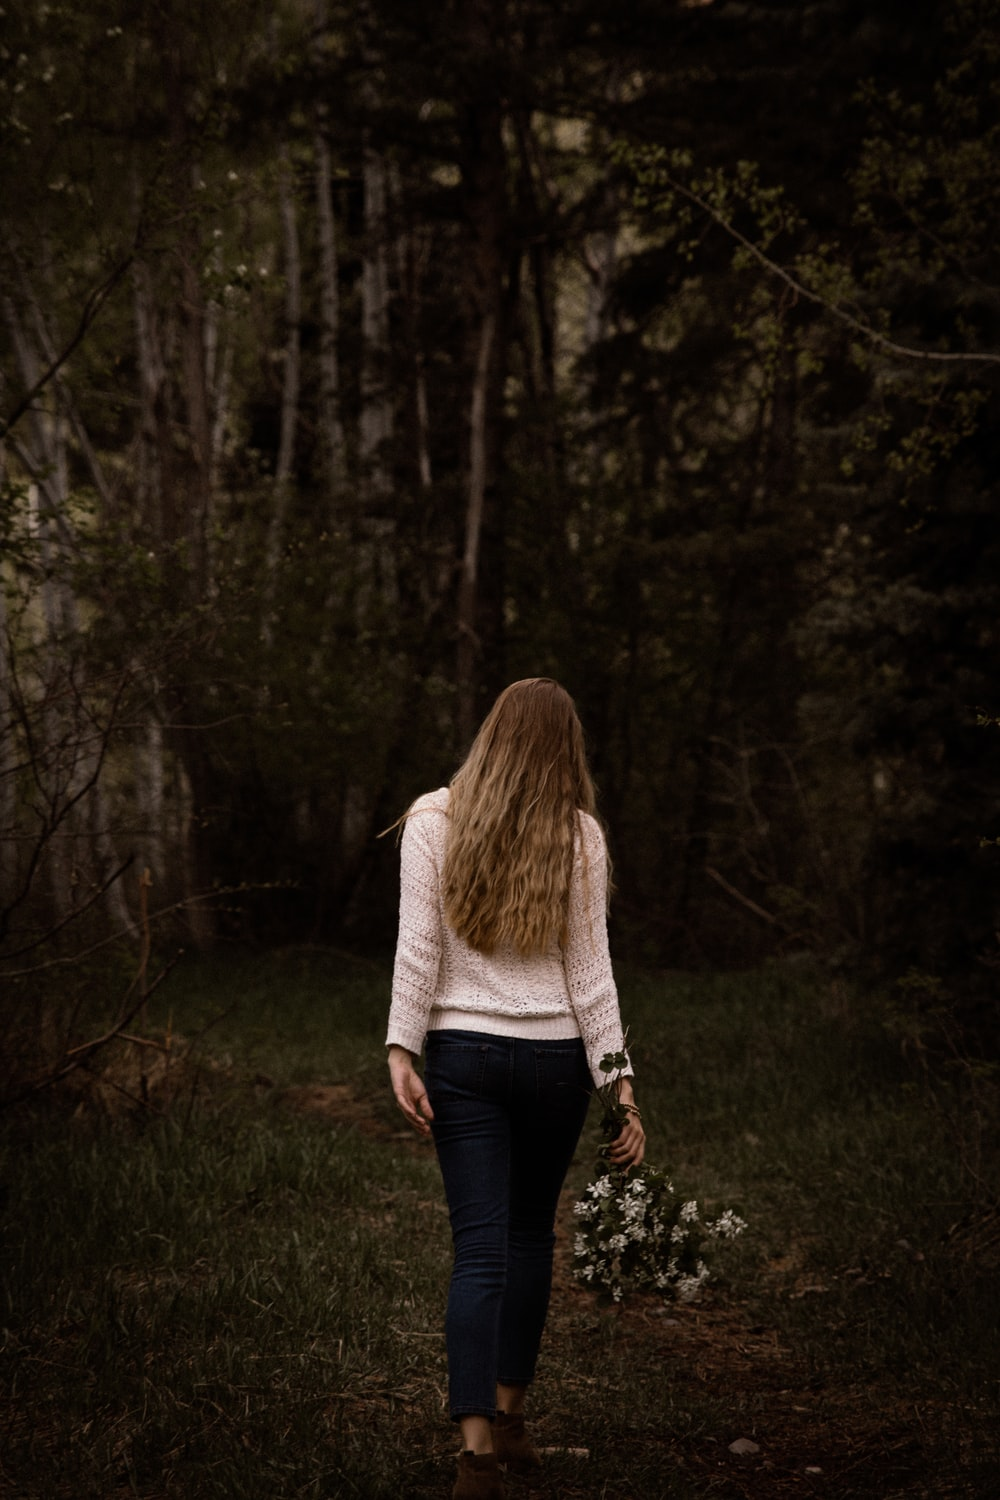 woman wearing white sweater and black pants walking near trees